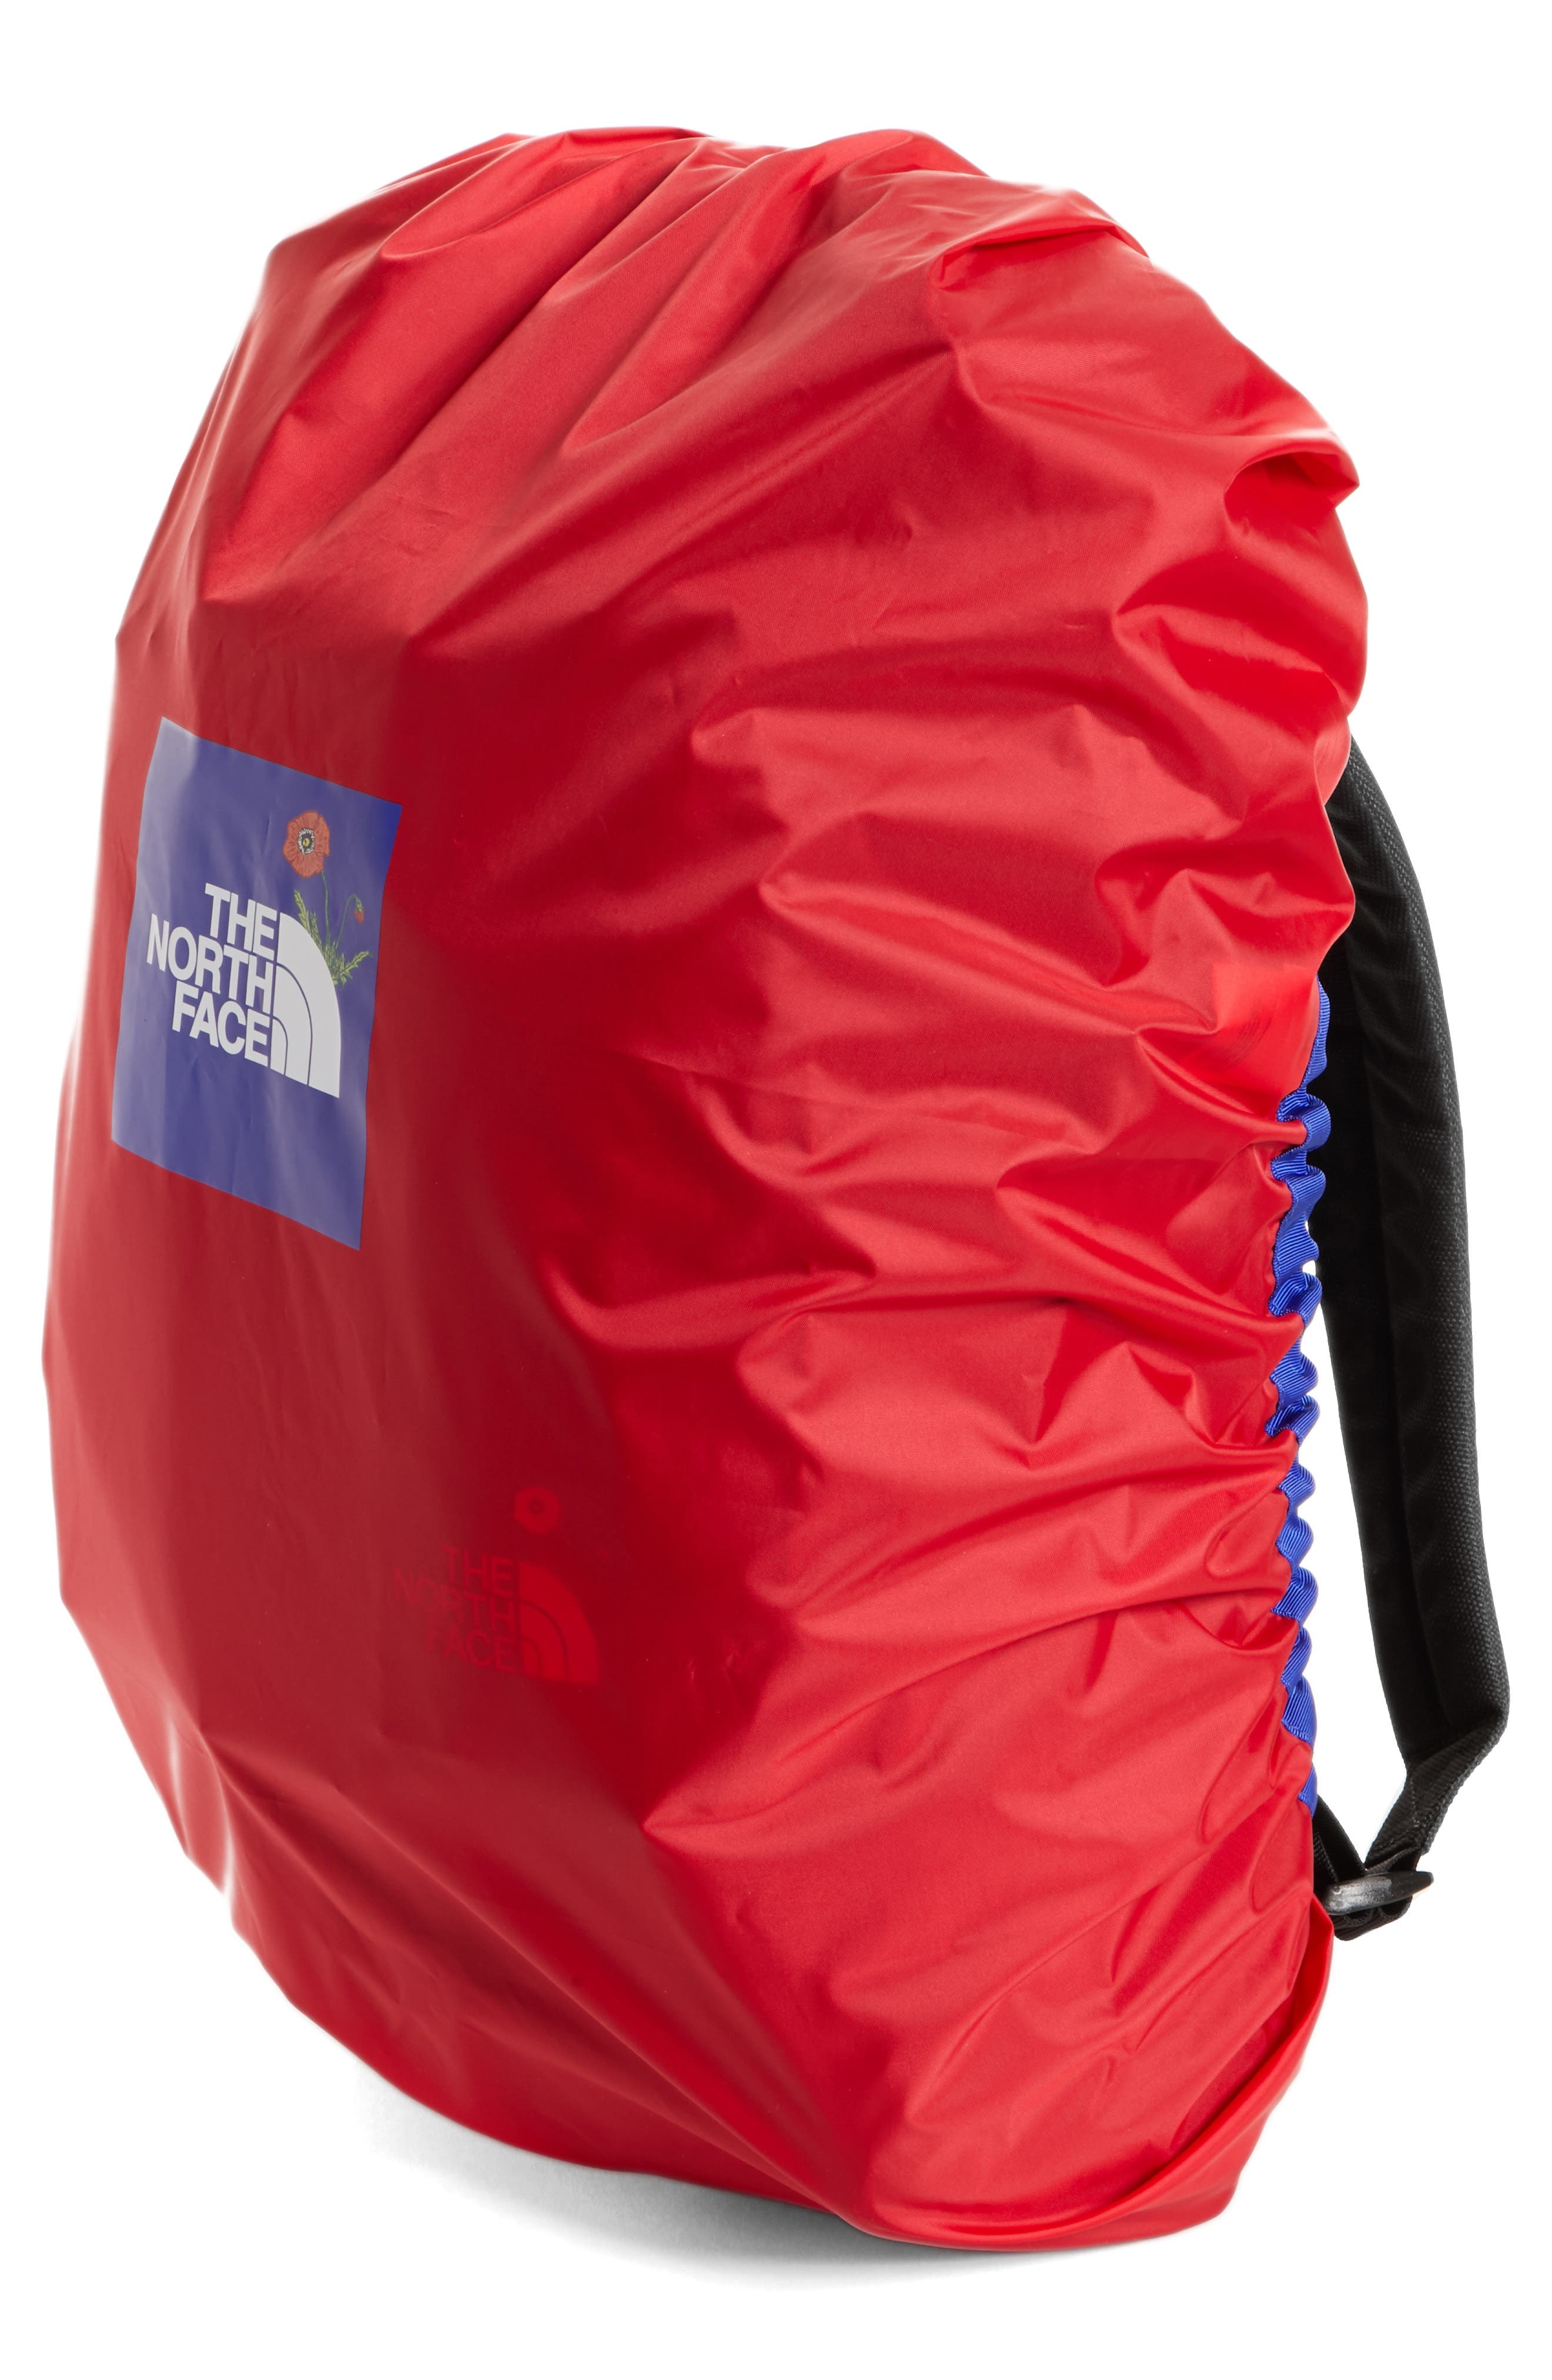 Main Image - The North Face Pack Waterproof Rain Cover